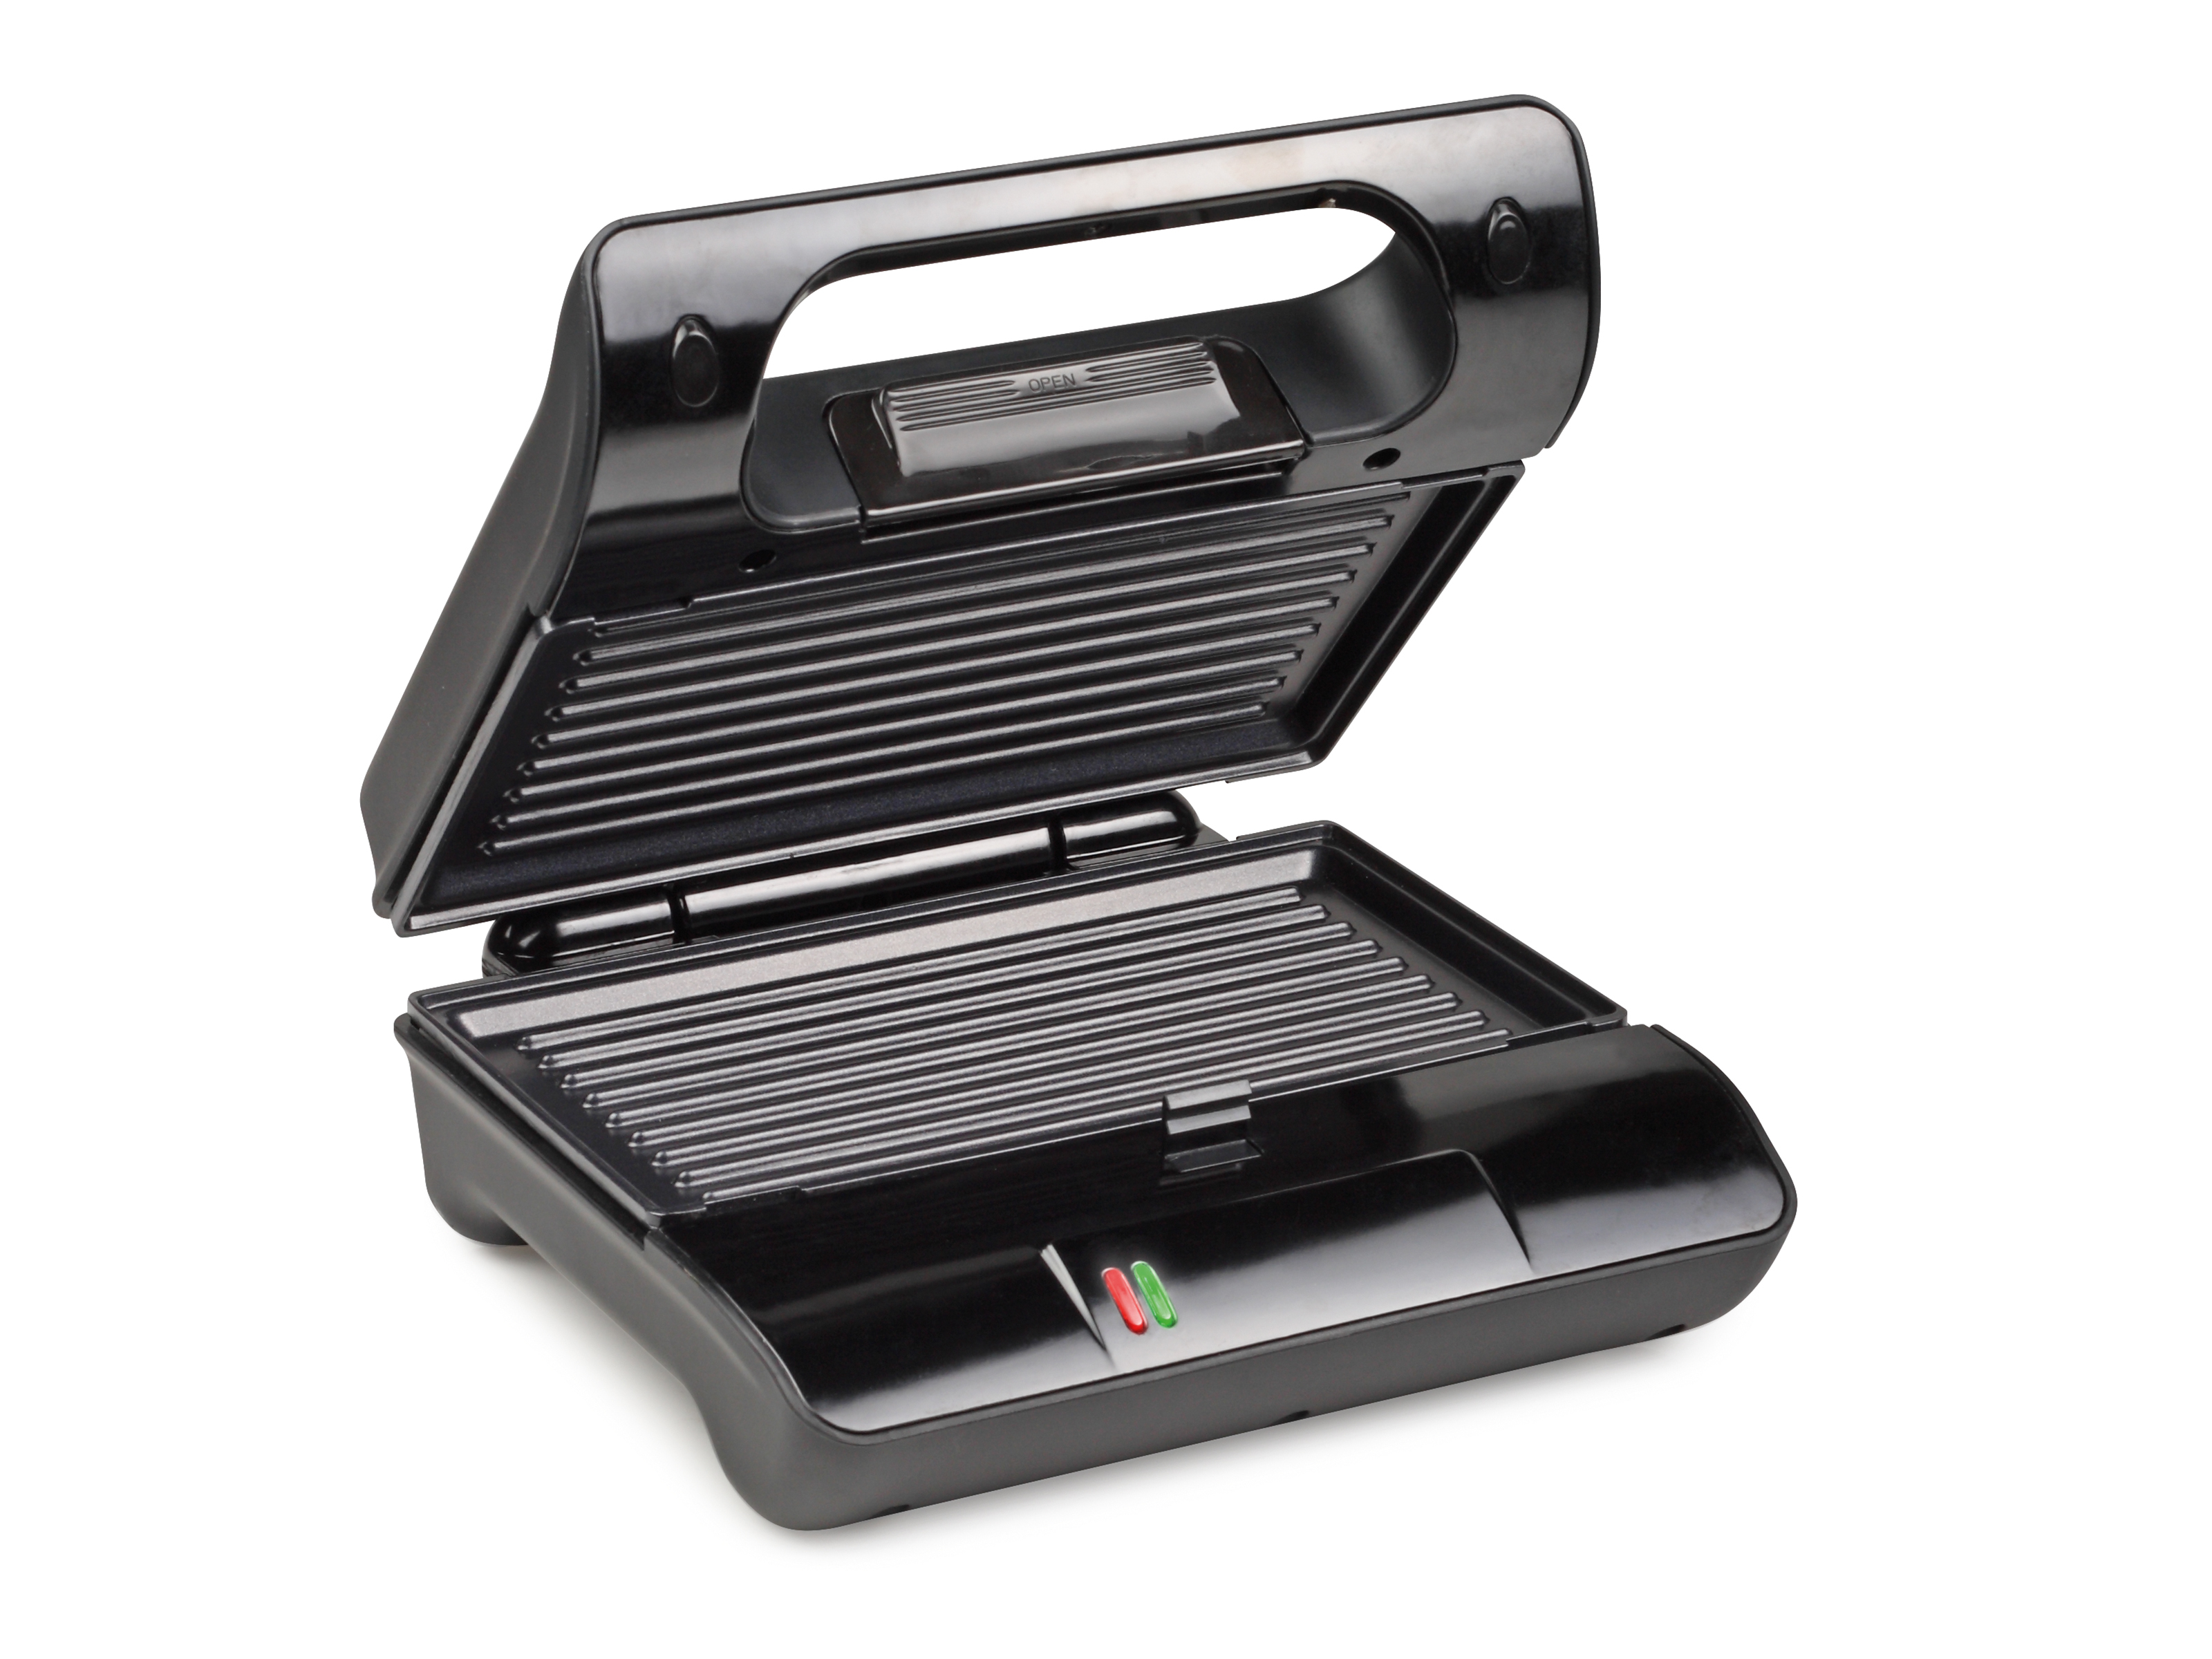 Image of Contactgrill Grill Compact